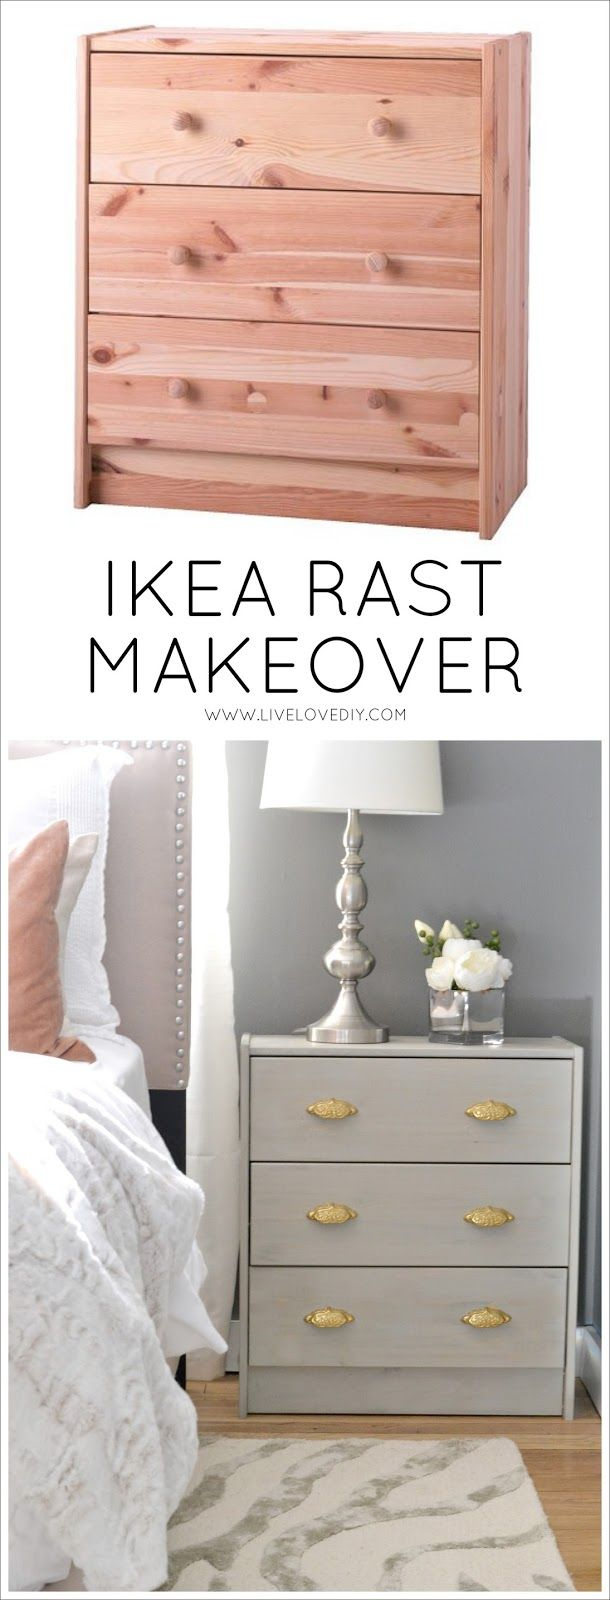 Awesome DIY Ikea Rast Hack With Sunbleached Gray Wood Stain | LiveLoveDIY Good Looking